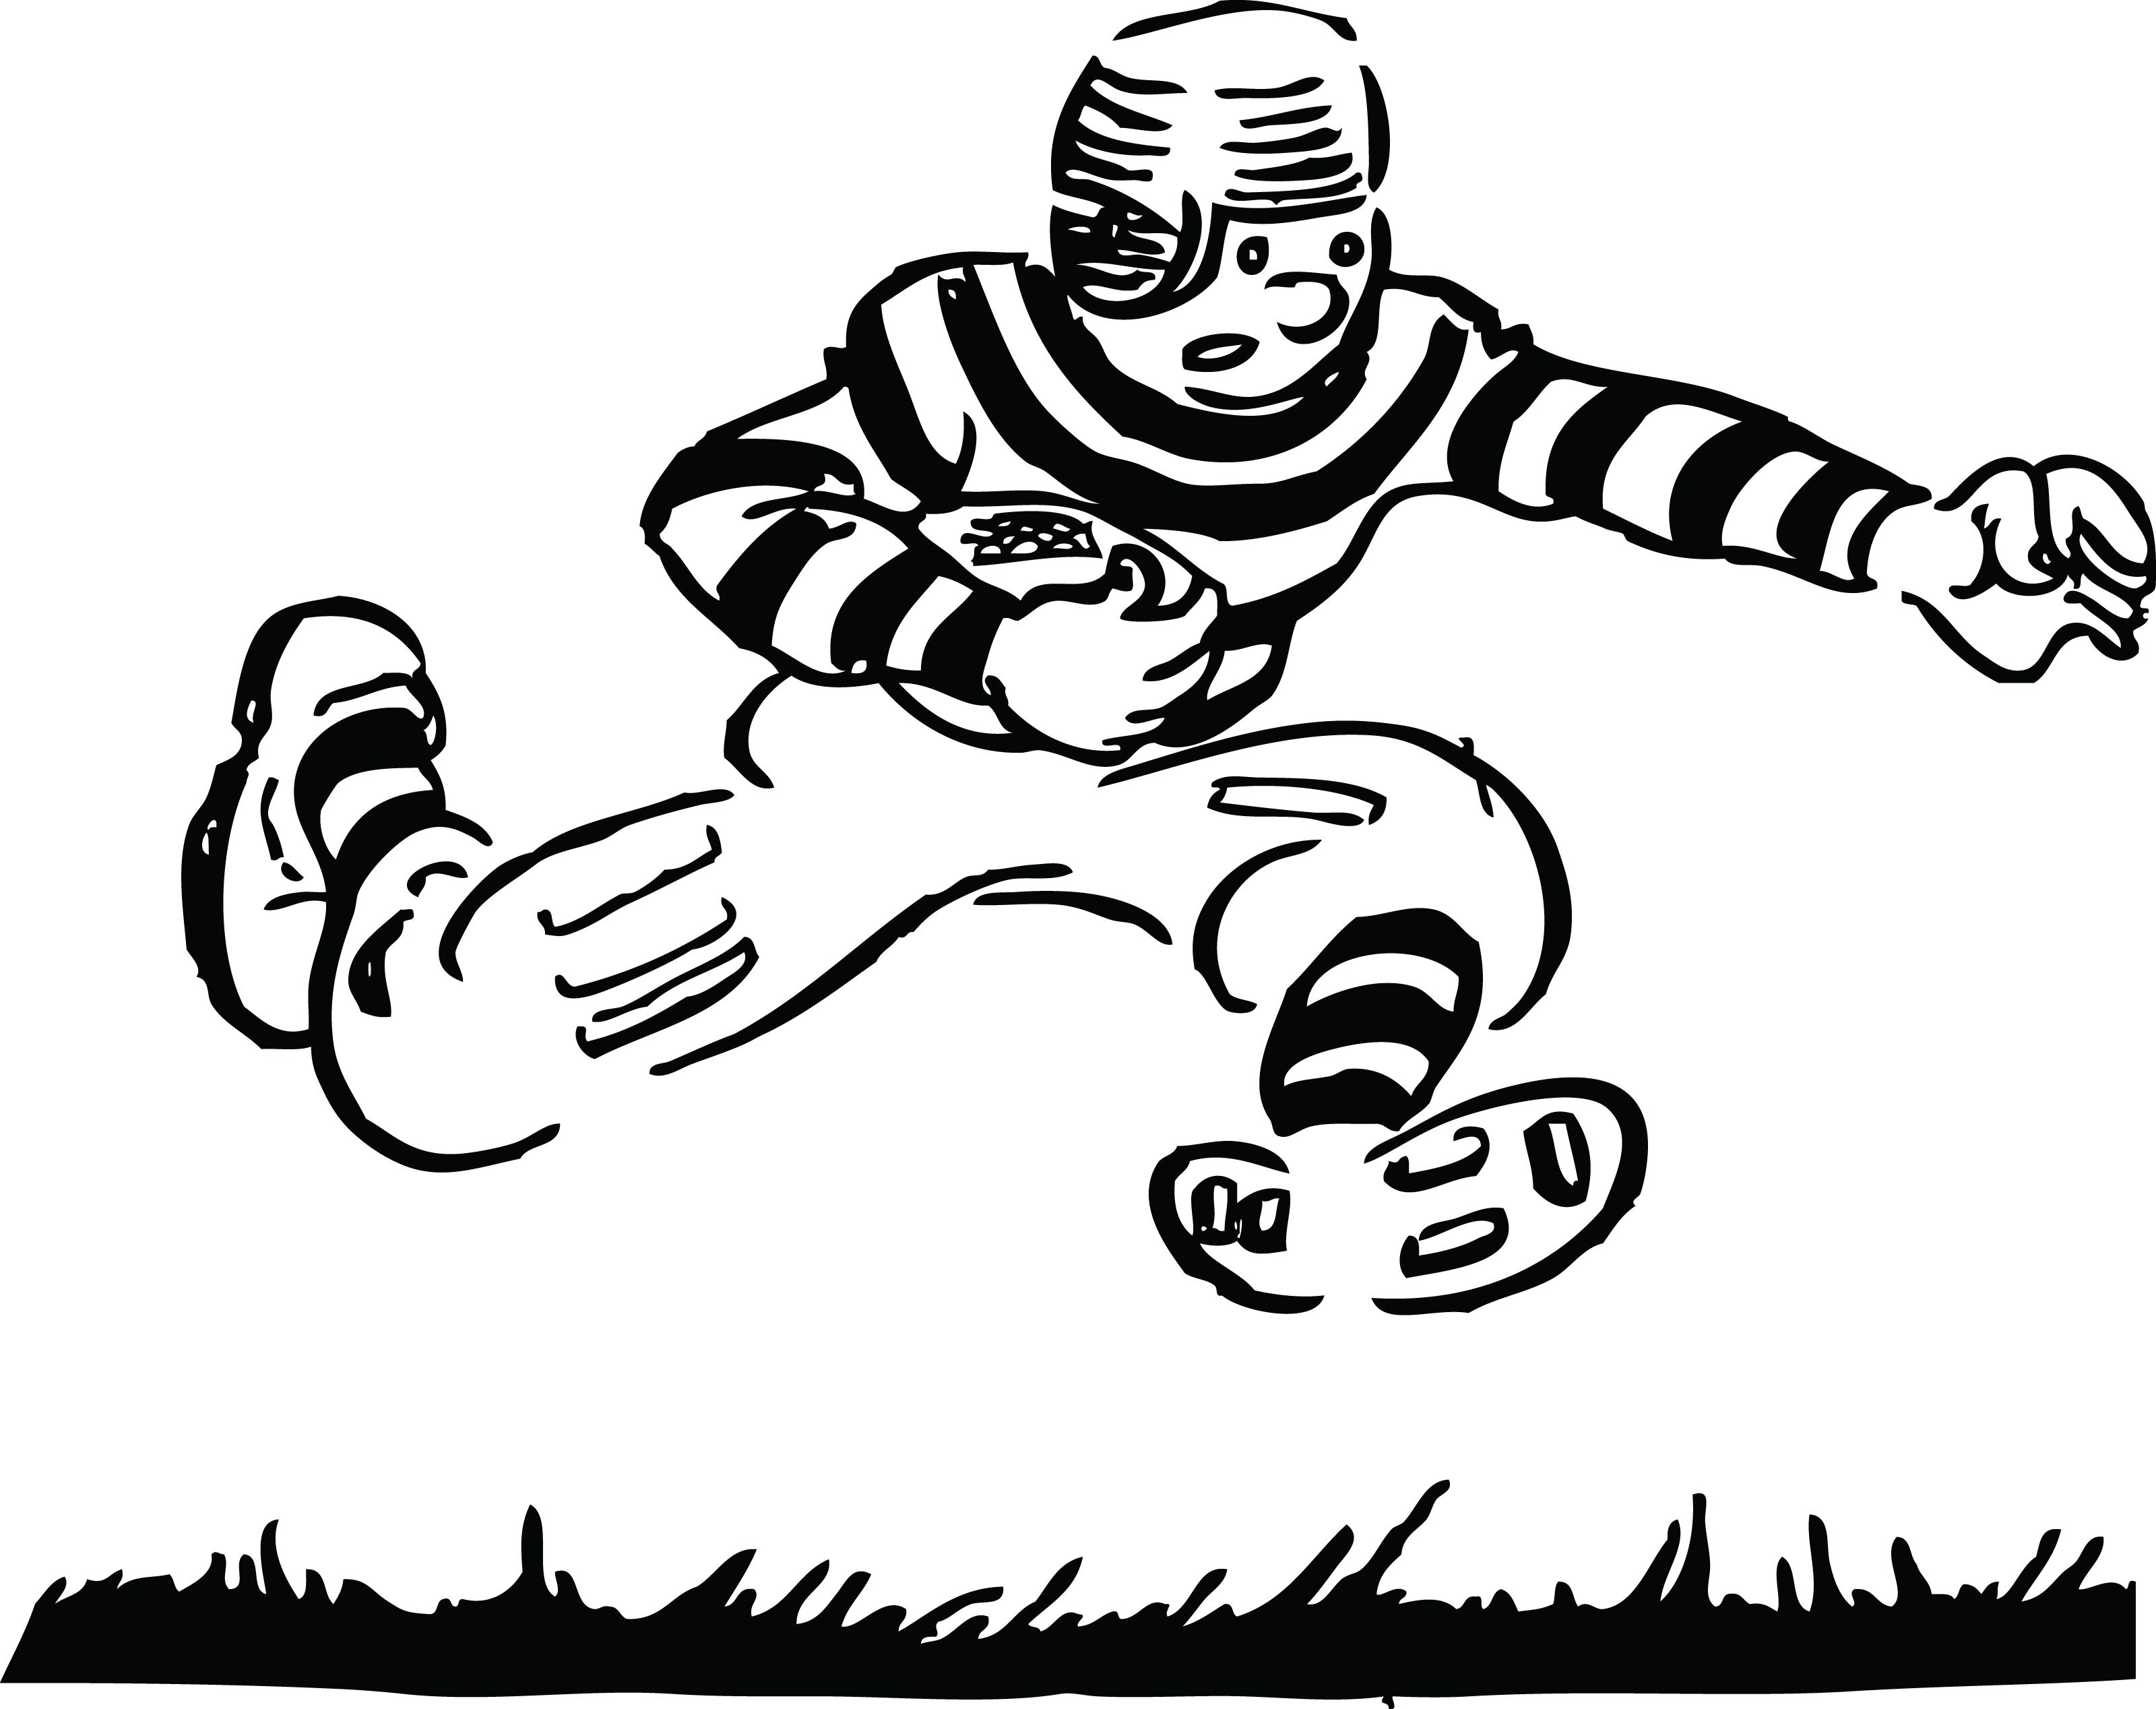 Football Clipart Black And White | Clipart Panda - Free Clipart Images